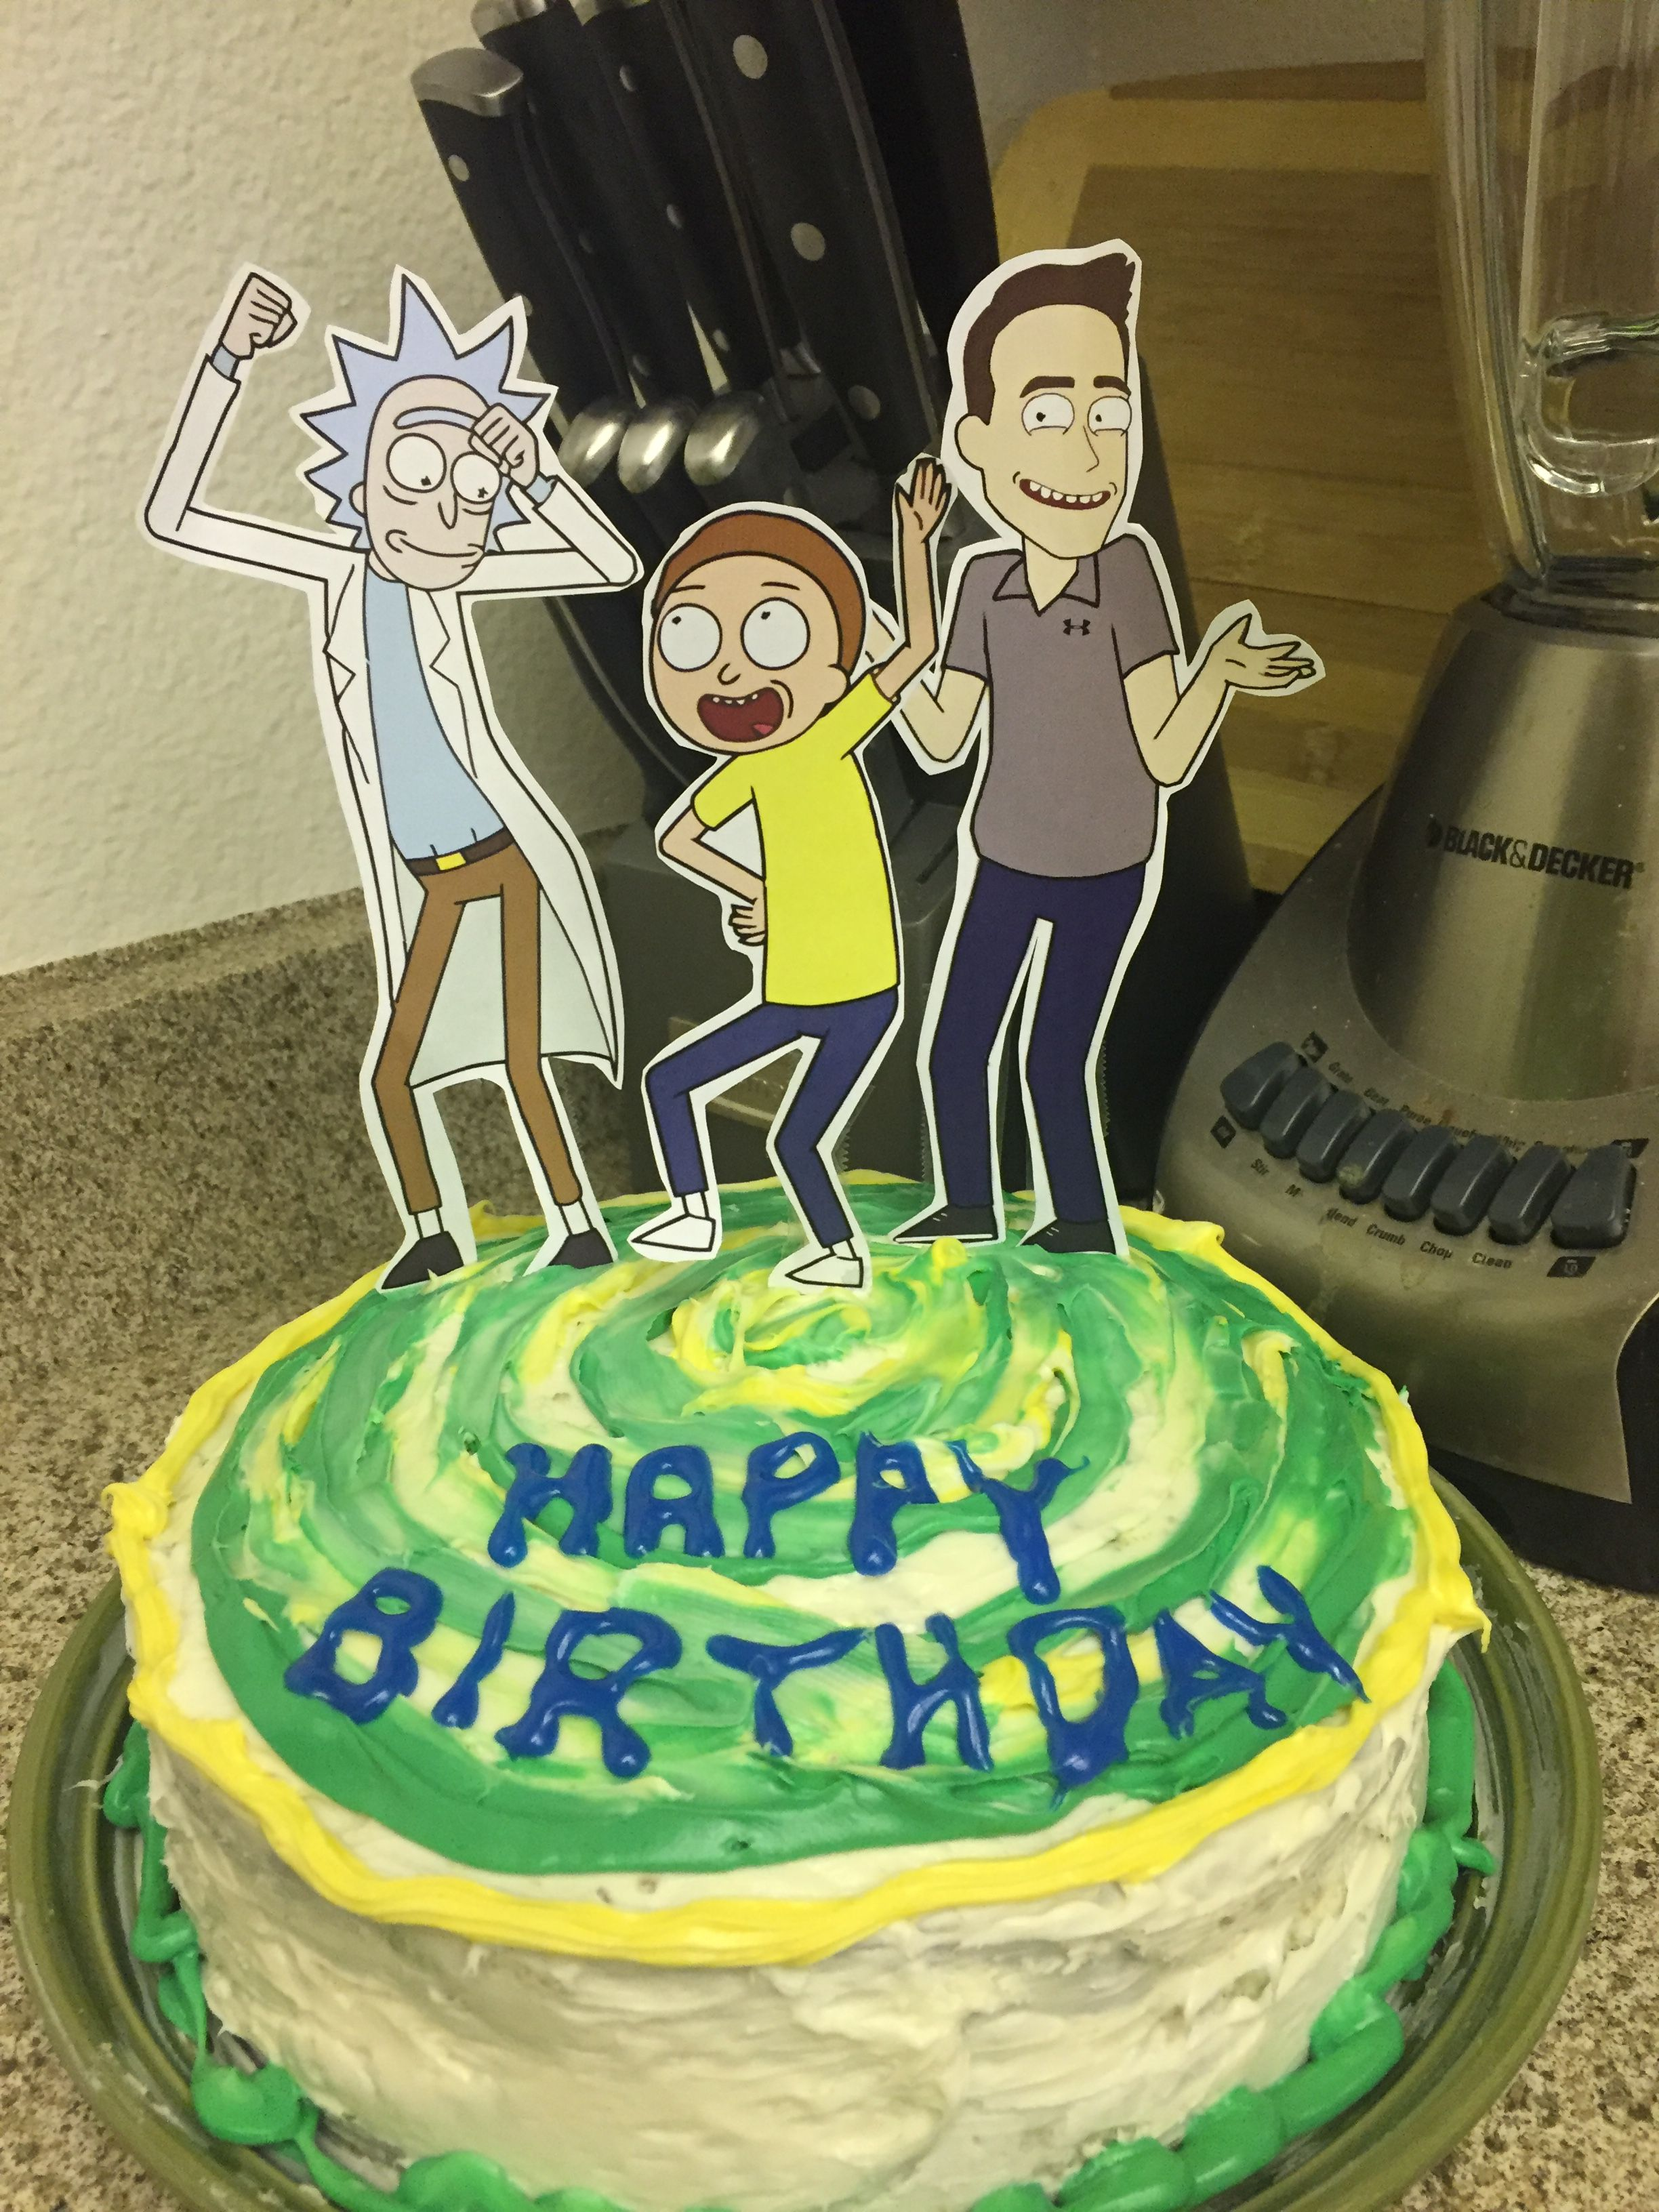 Rick And Morty Portal Cake With Slime Green Interior Getschwifty